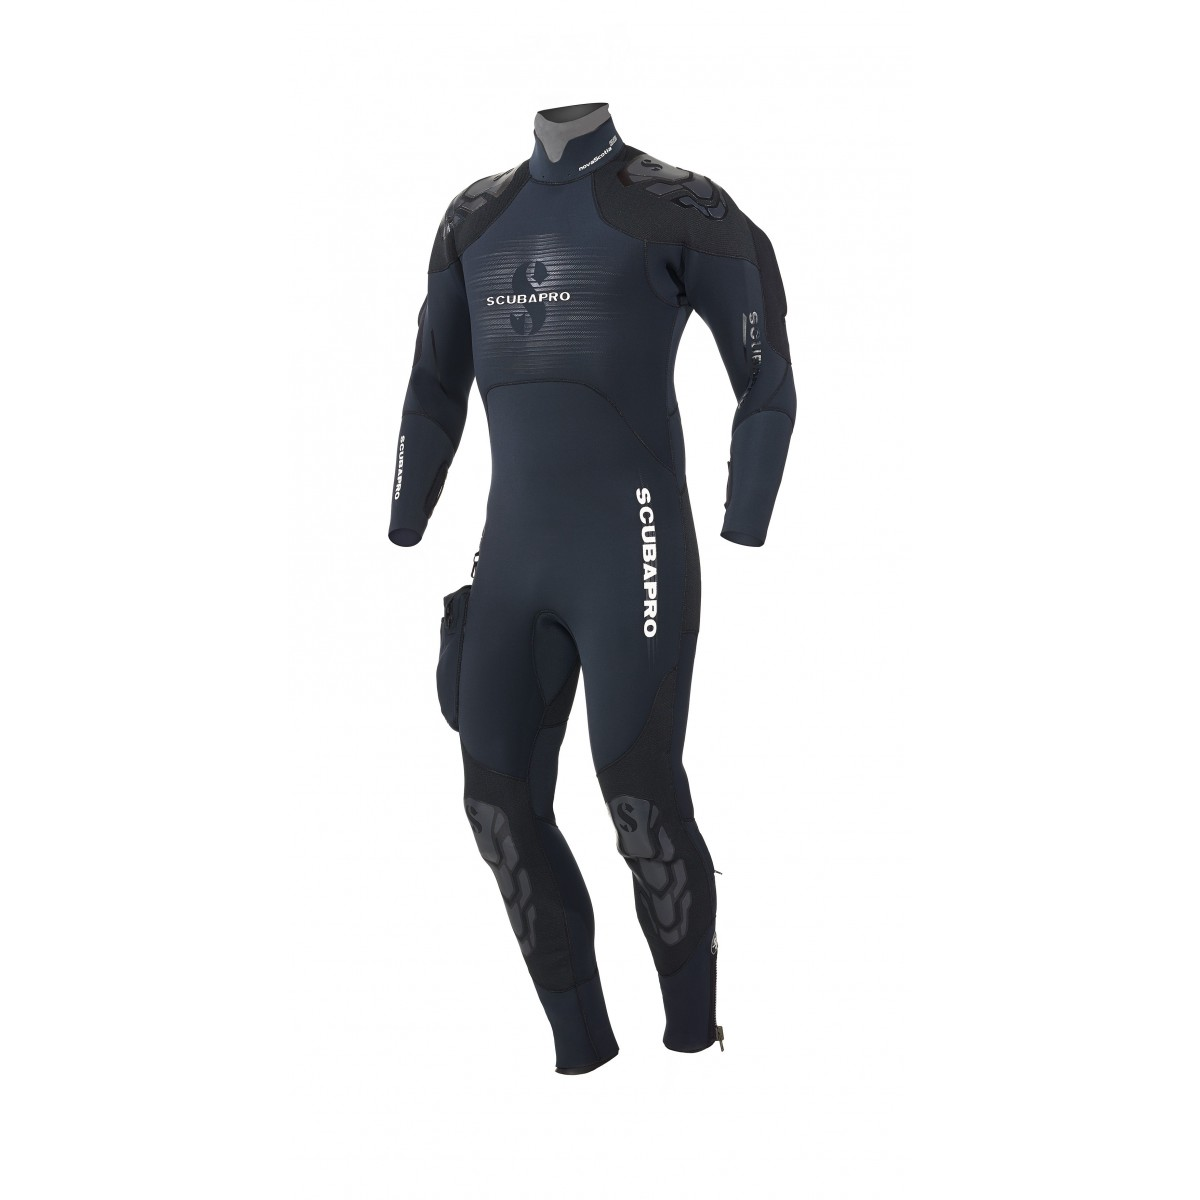 Scubapro Men's NOVA SCOTIA Semi-Dry 6mm Wetsuit